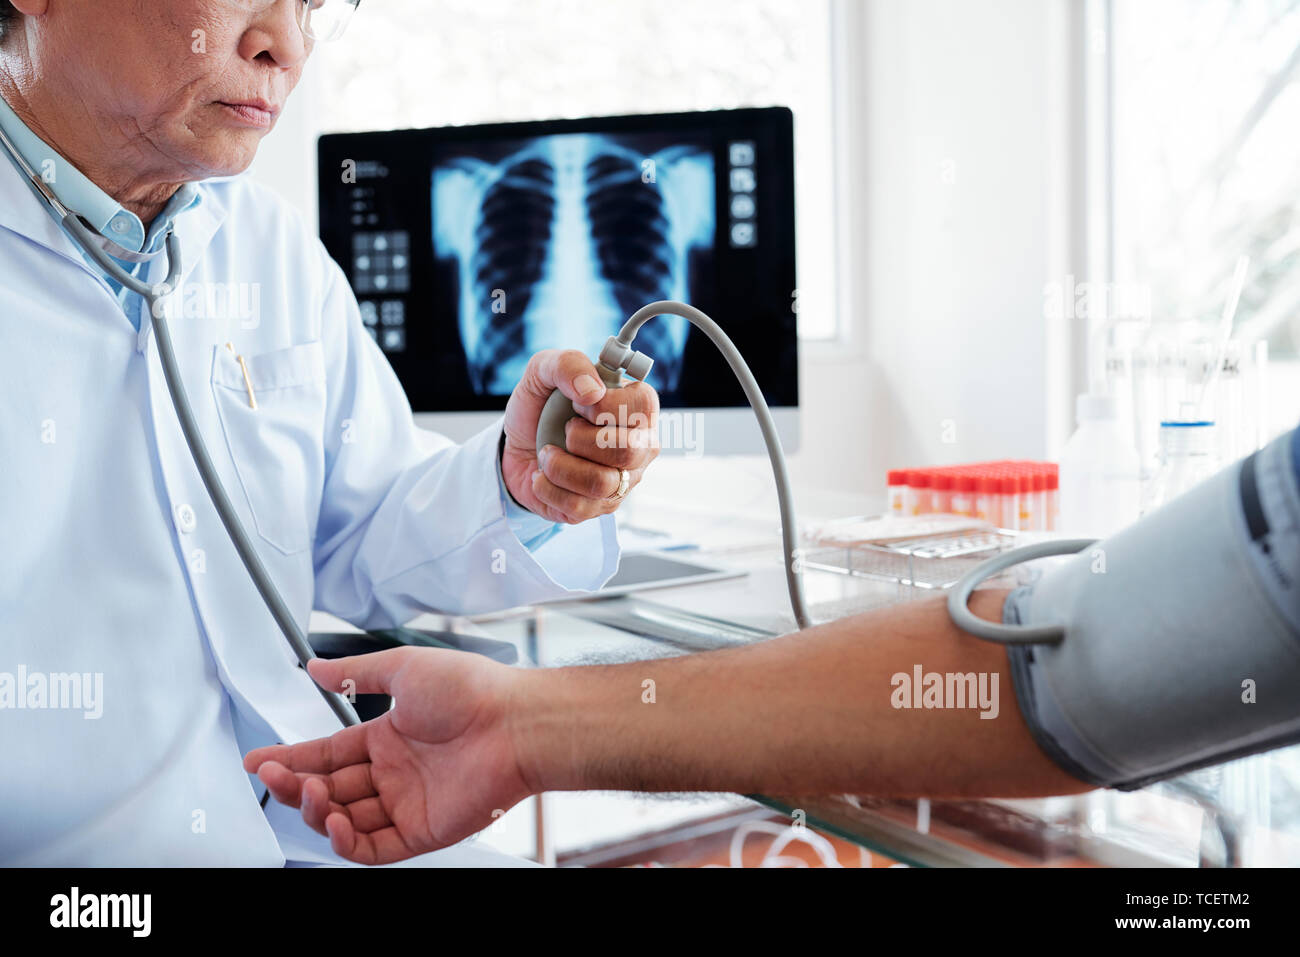 Serious general practitioner measuring blood pressure of young patient, chest x-ray on computer screen in background - Stock Image